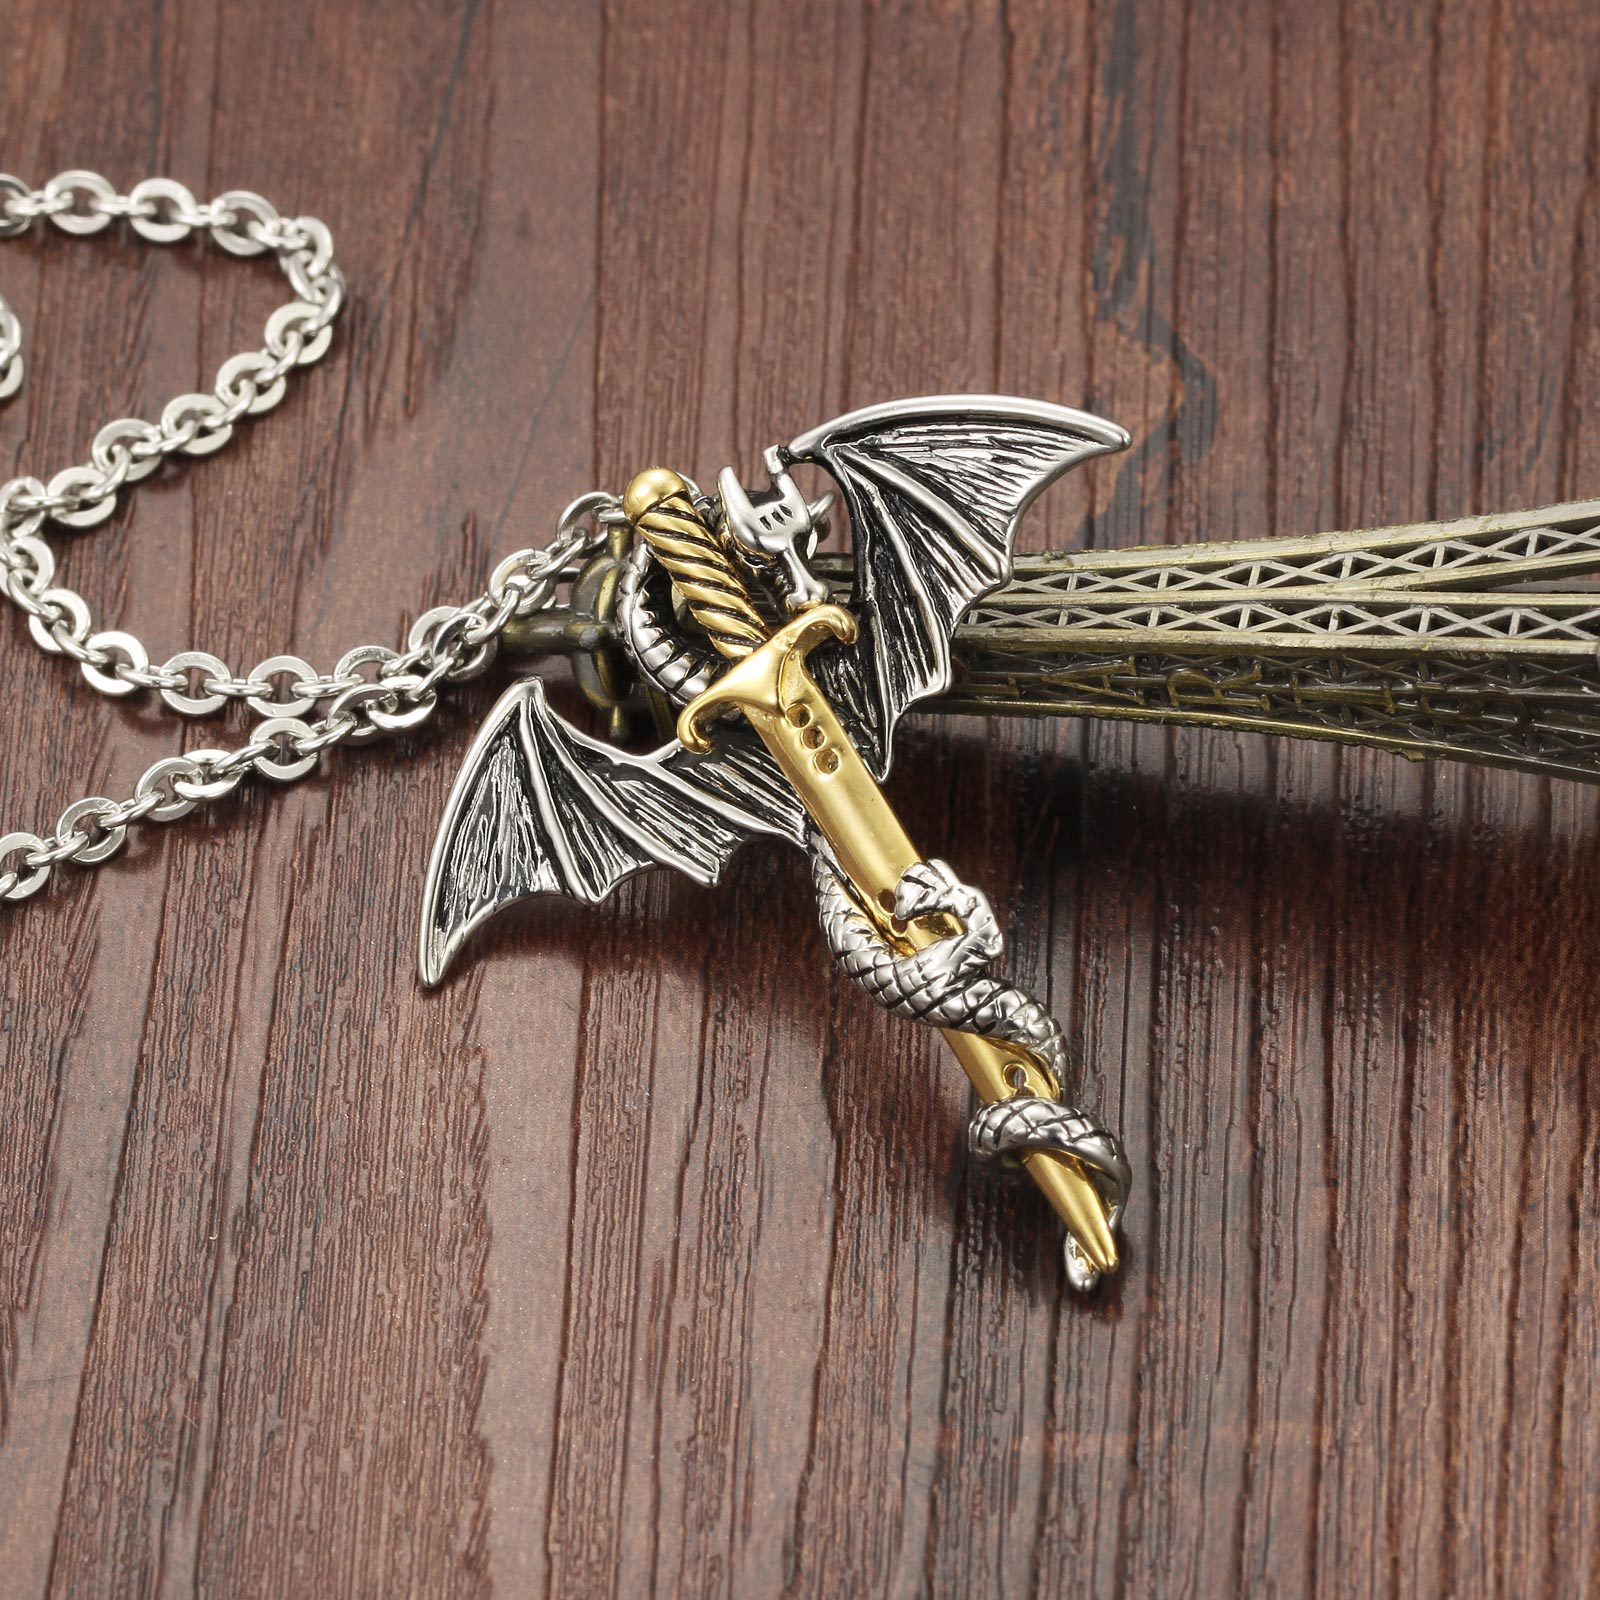 Punk Rock Stainless Steel Dragon Axe Shape Pendant Beads Chain Novelty Necklace